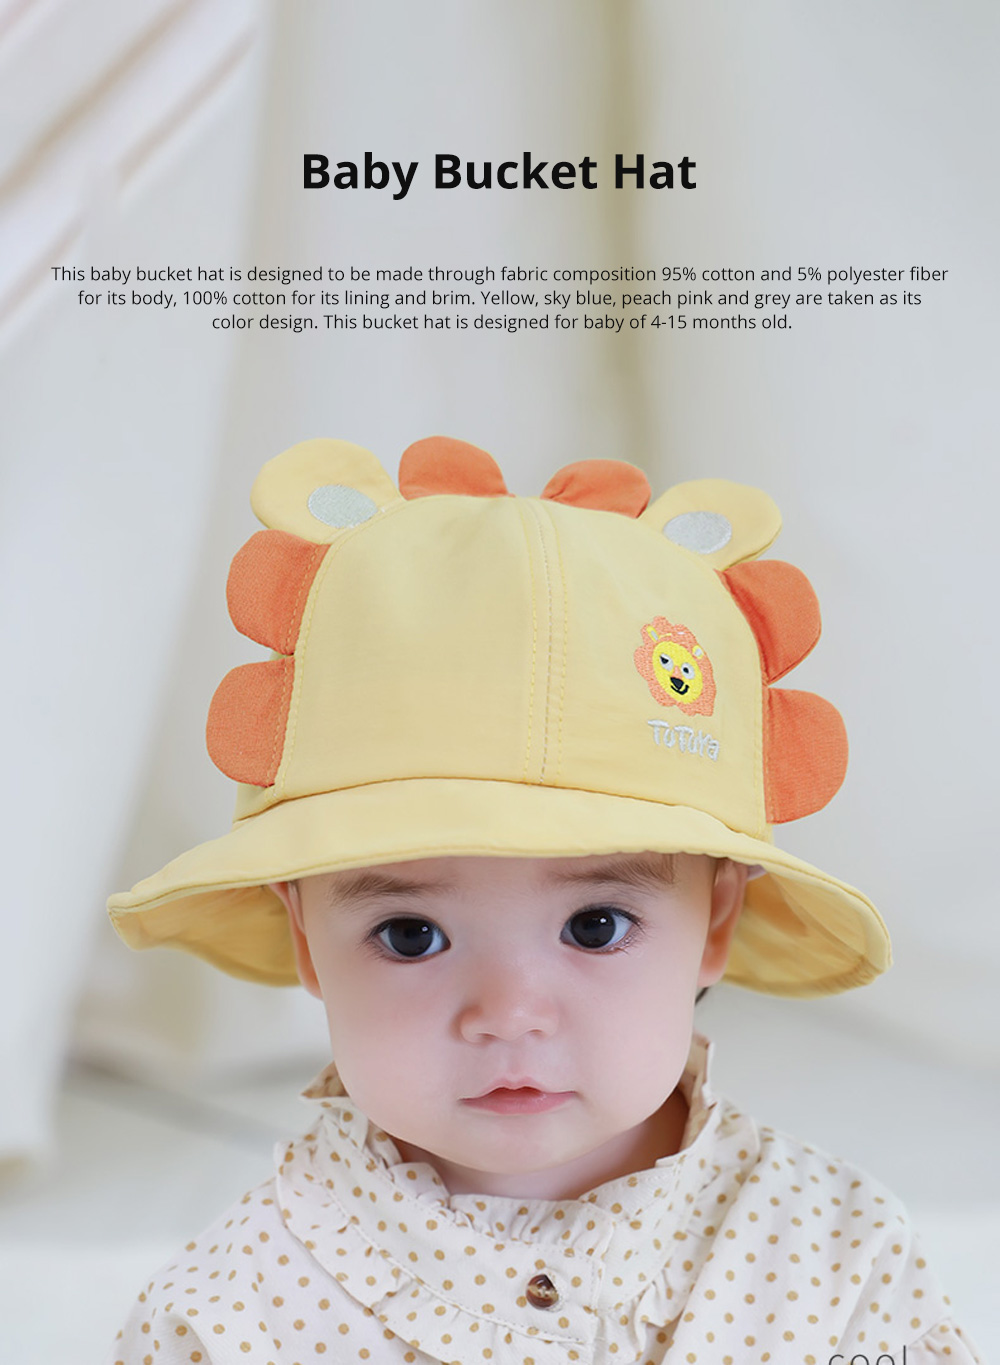 Bucket Hat for Babies Sunshine Shade Thin Spring Cotton Hat Lovely Comfortable Baby Bucket Hat Breathable Baby Hat 0